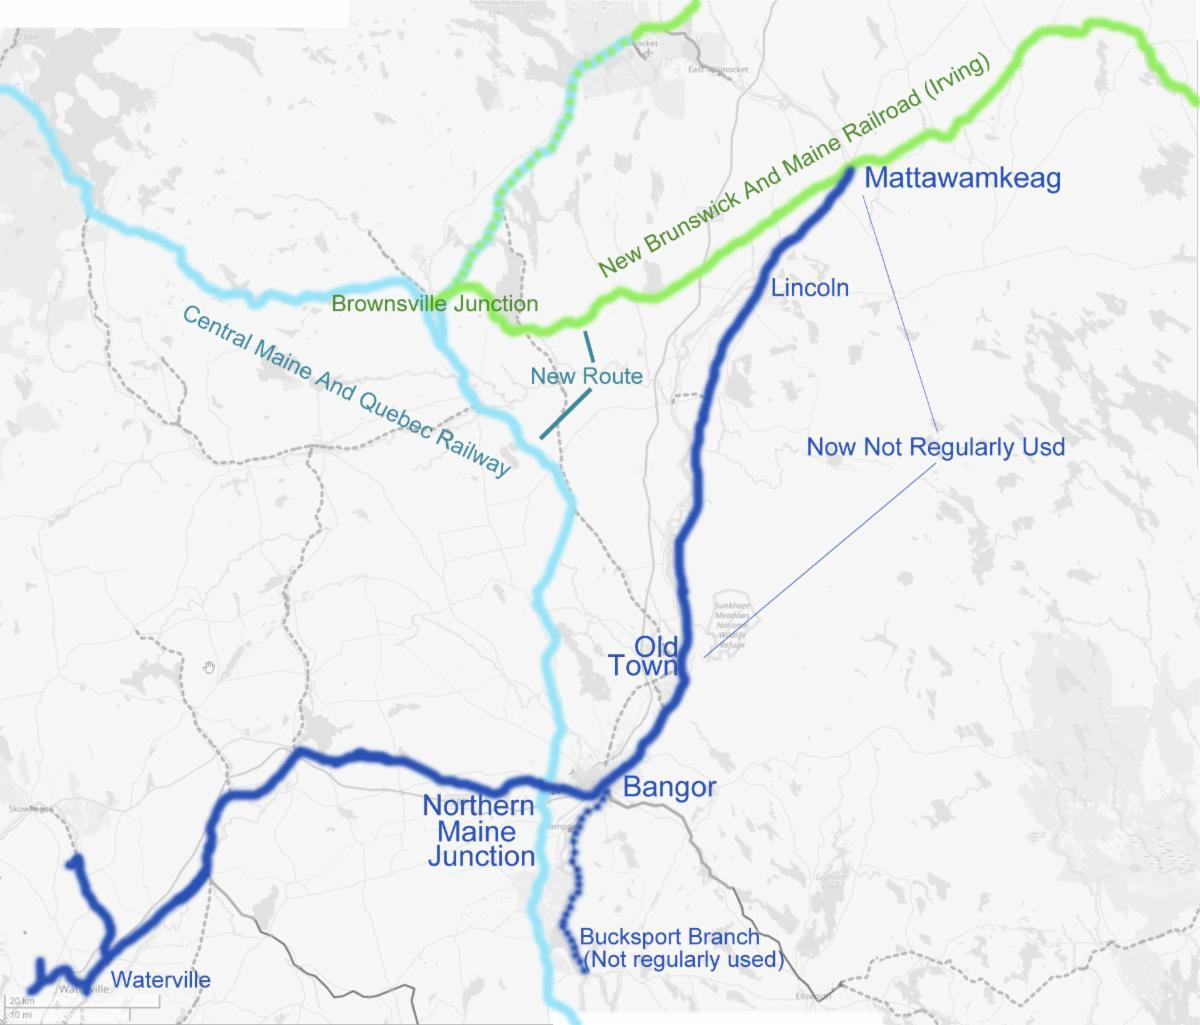 PAR: Ups And Downs On The Mattawamkeag Line